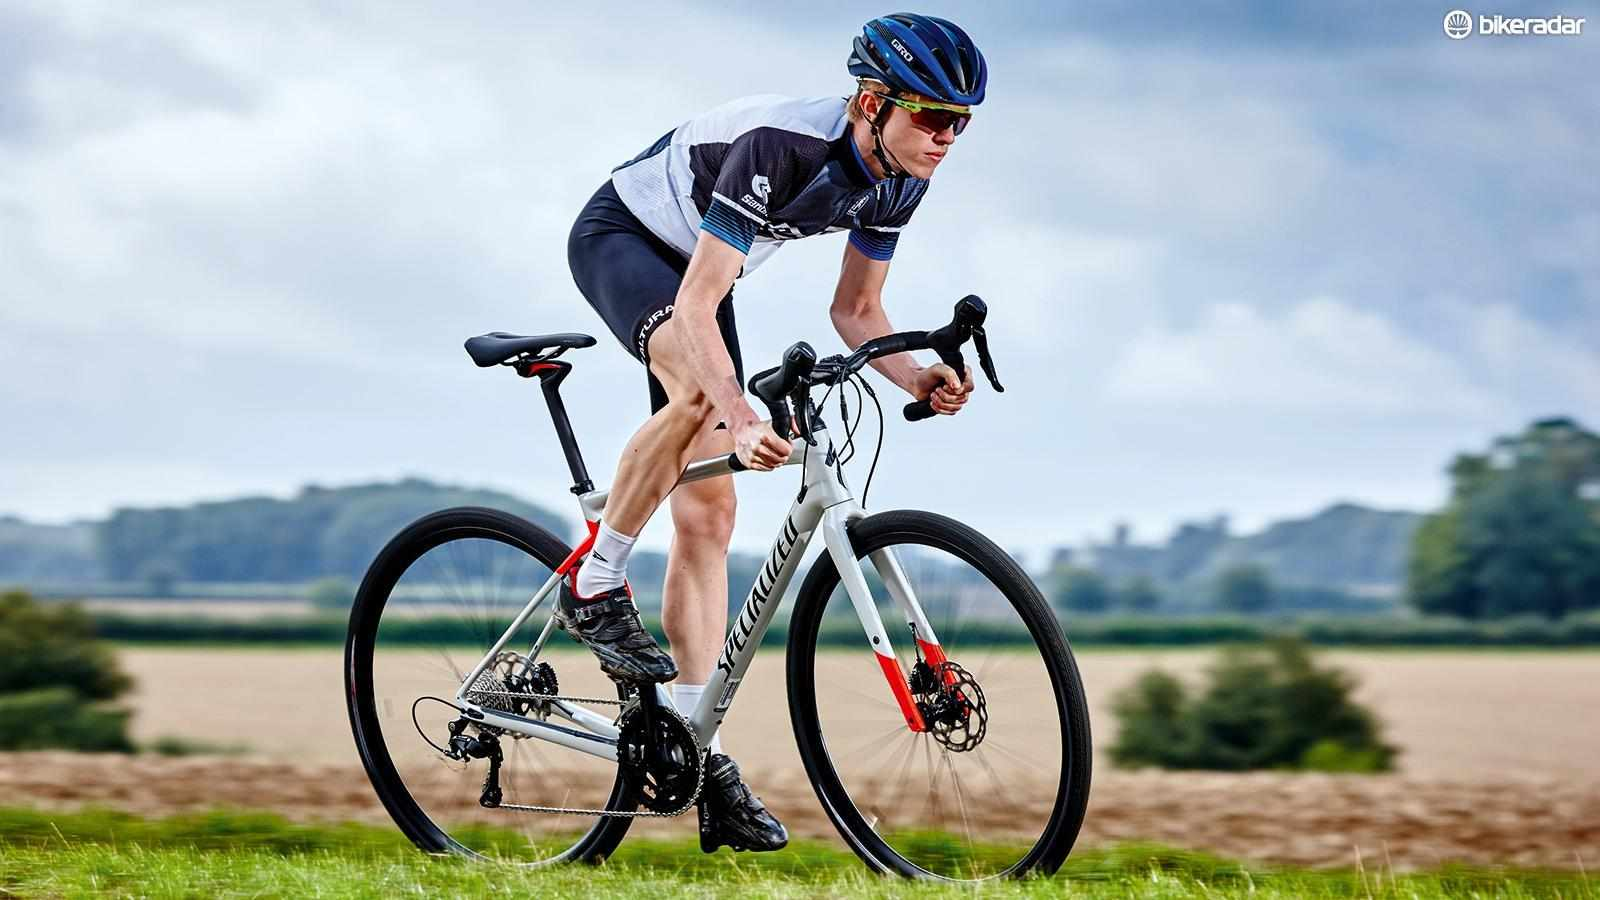 Is there a simpler way to improve cycling performance?